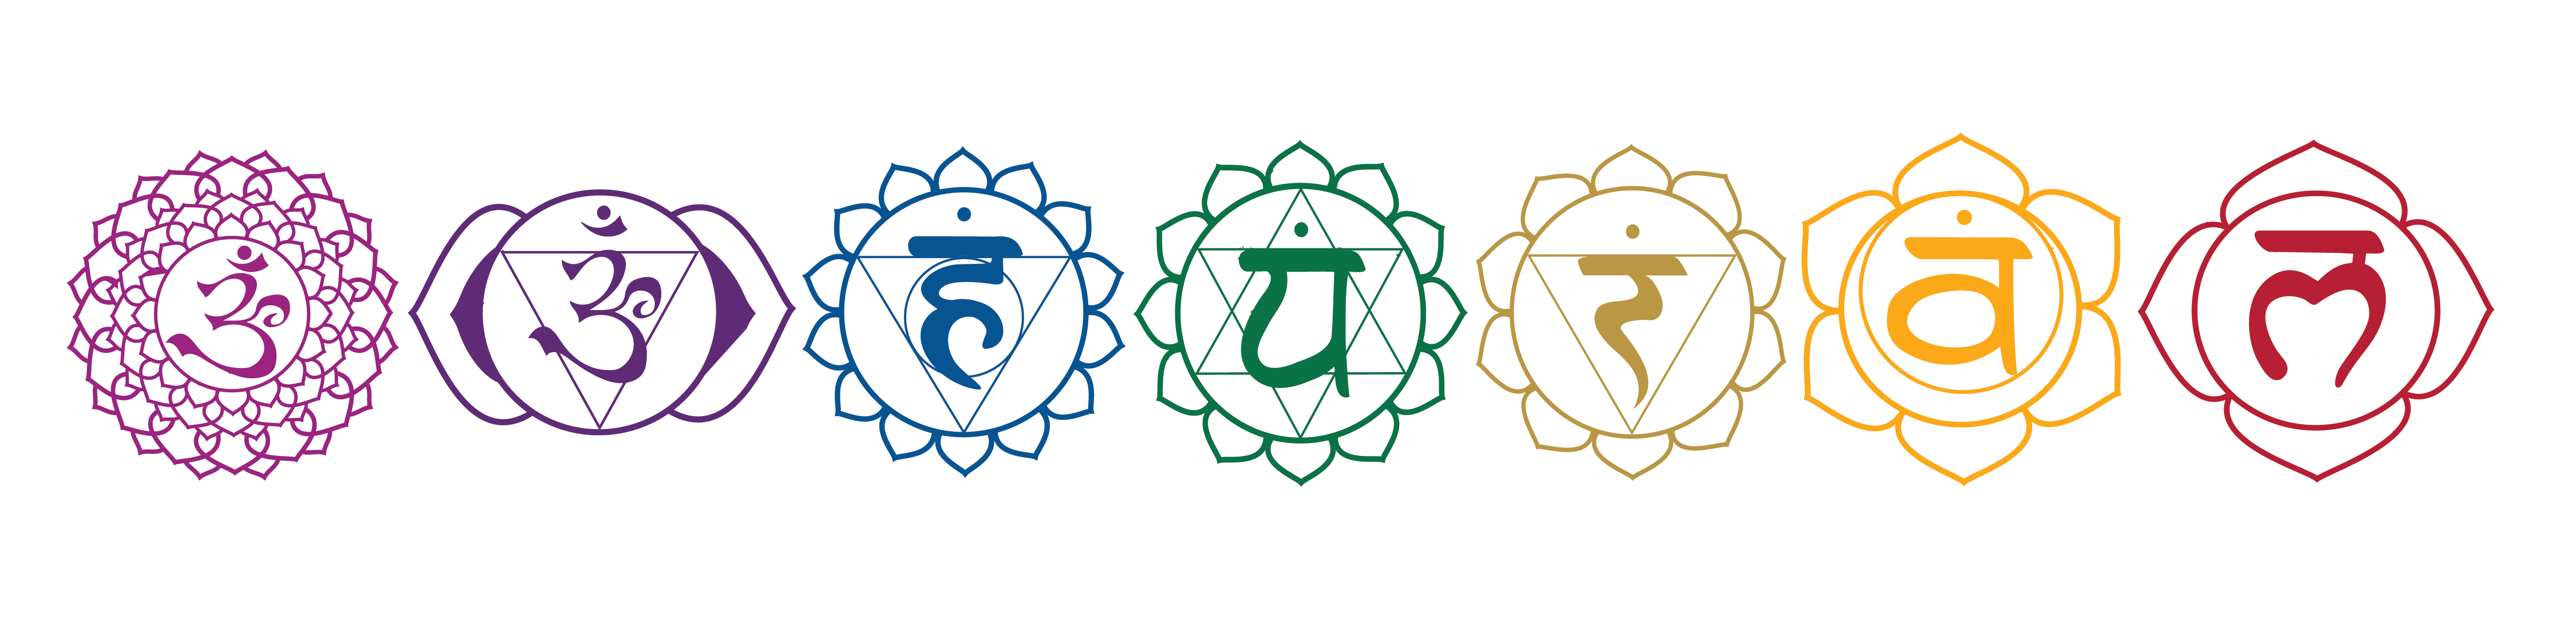 chakra-spread.png